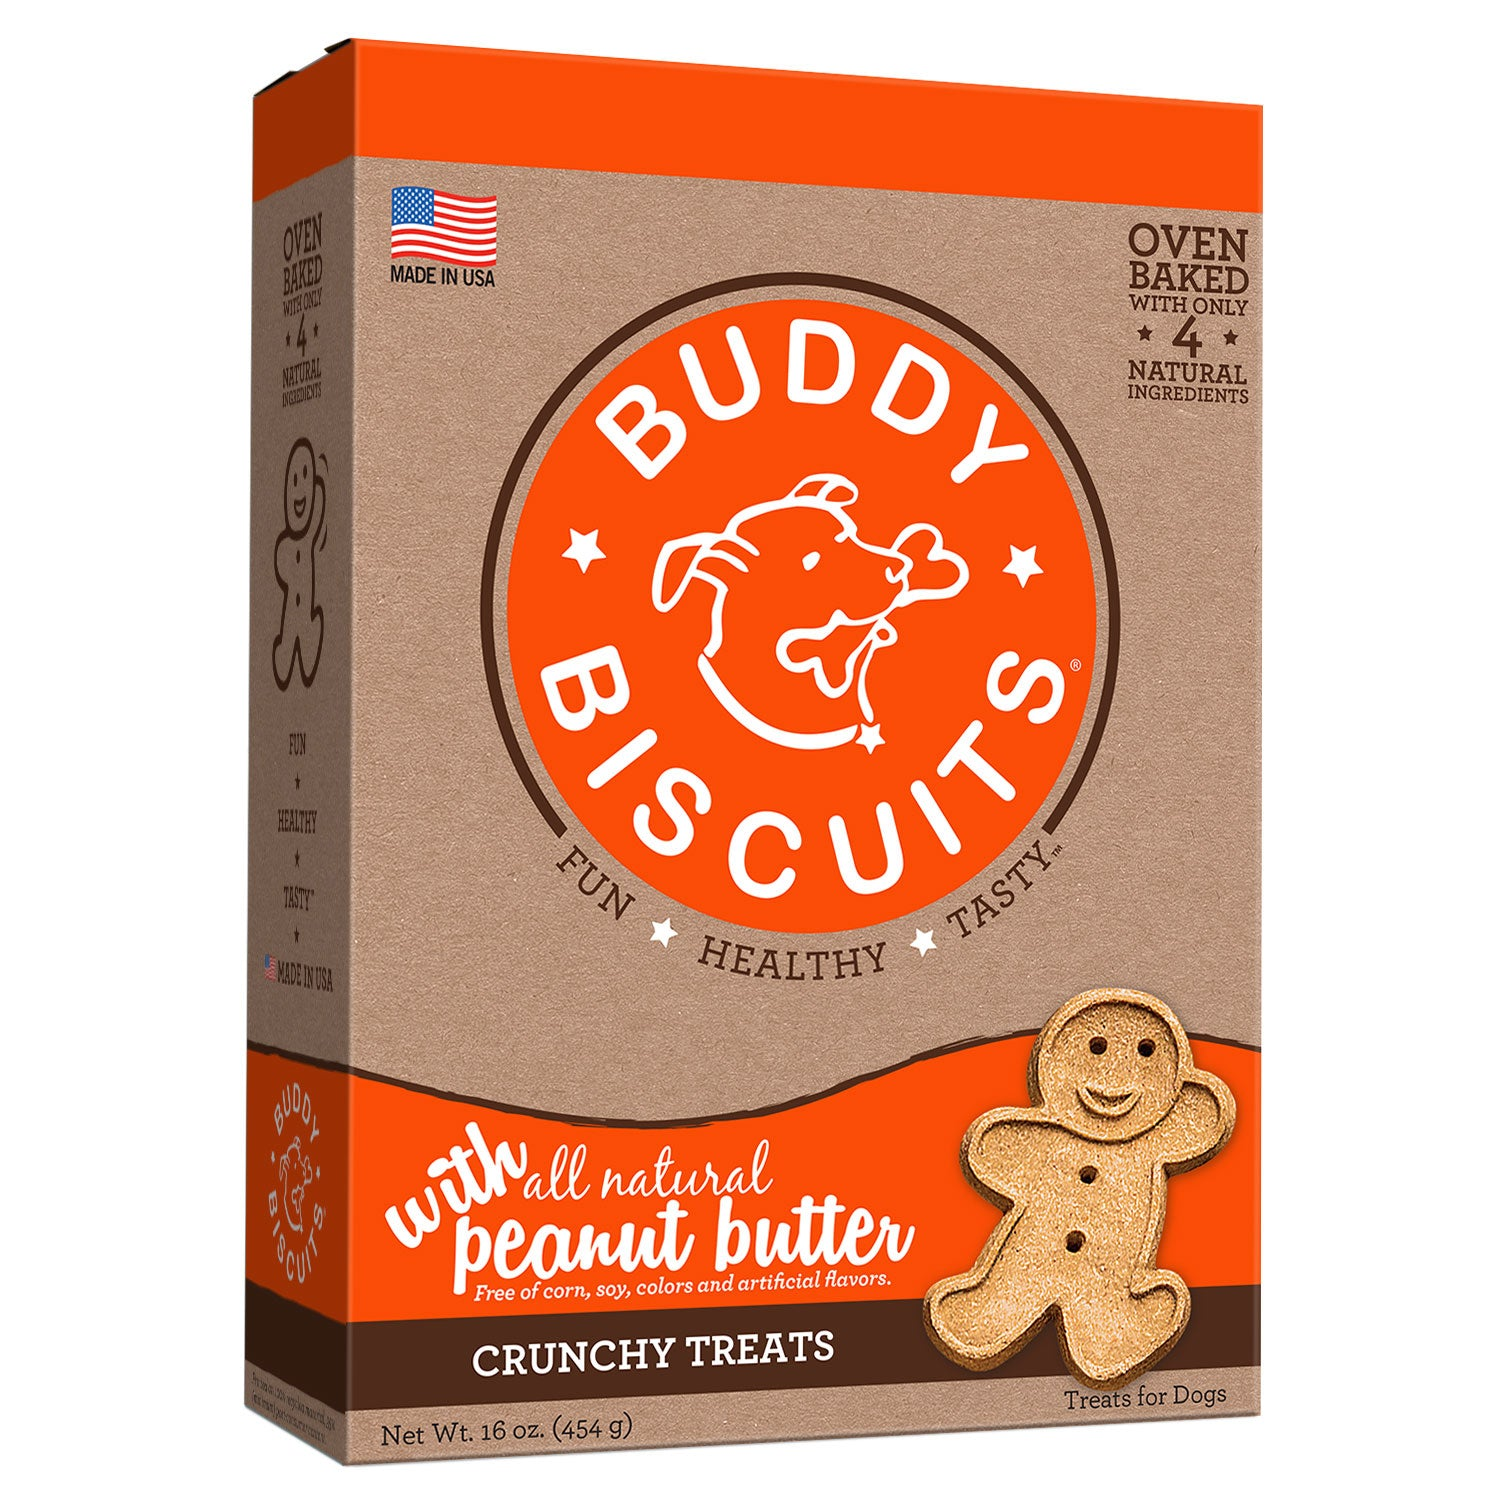 Buddy Biscuits Original Oven Baked Crunchy Treats Peanut Butter 16 ounces Dog Treats and Bones - London the Local